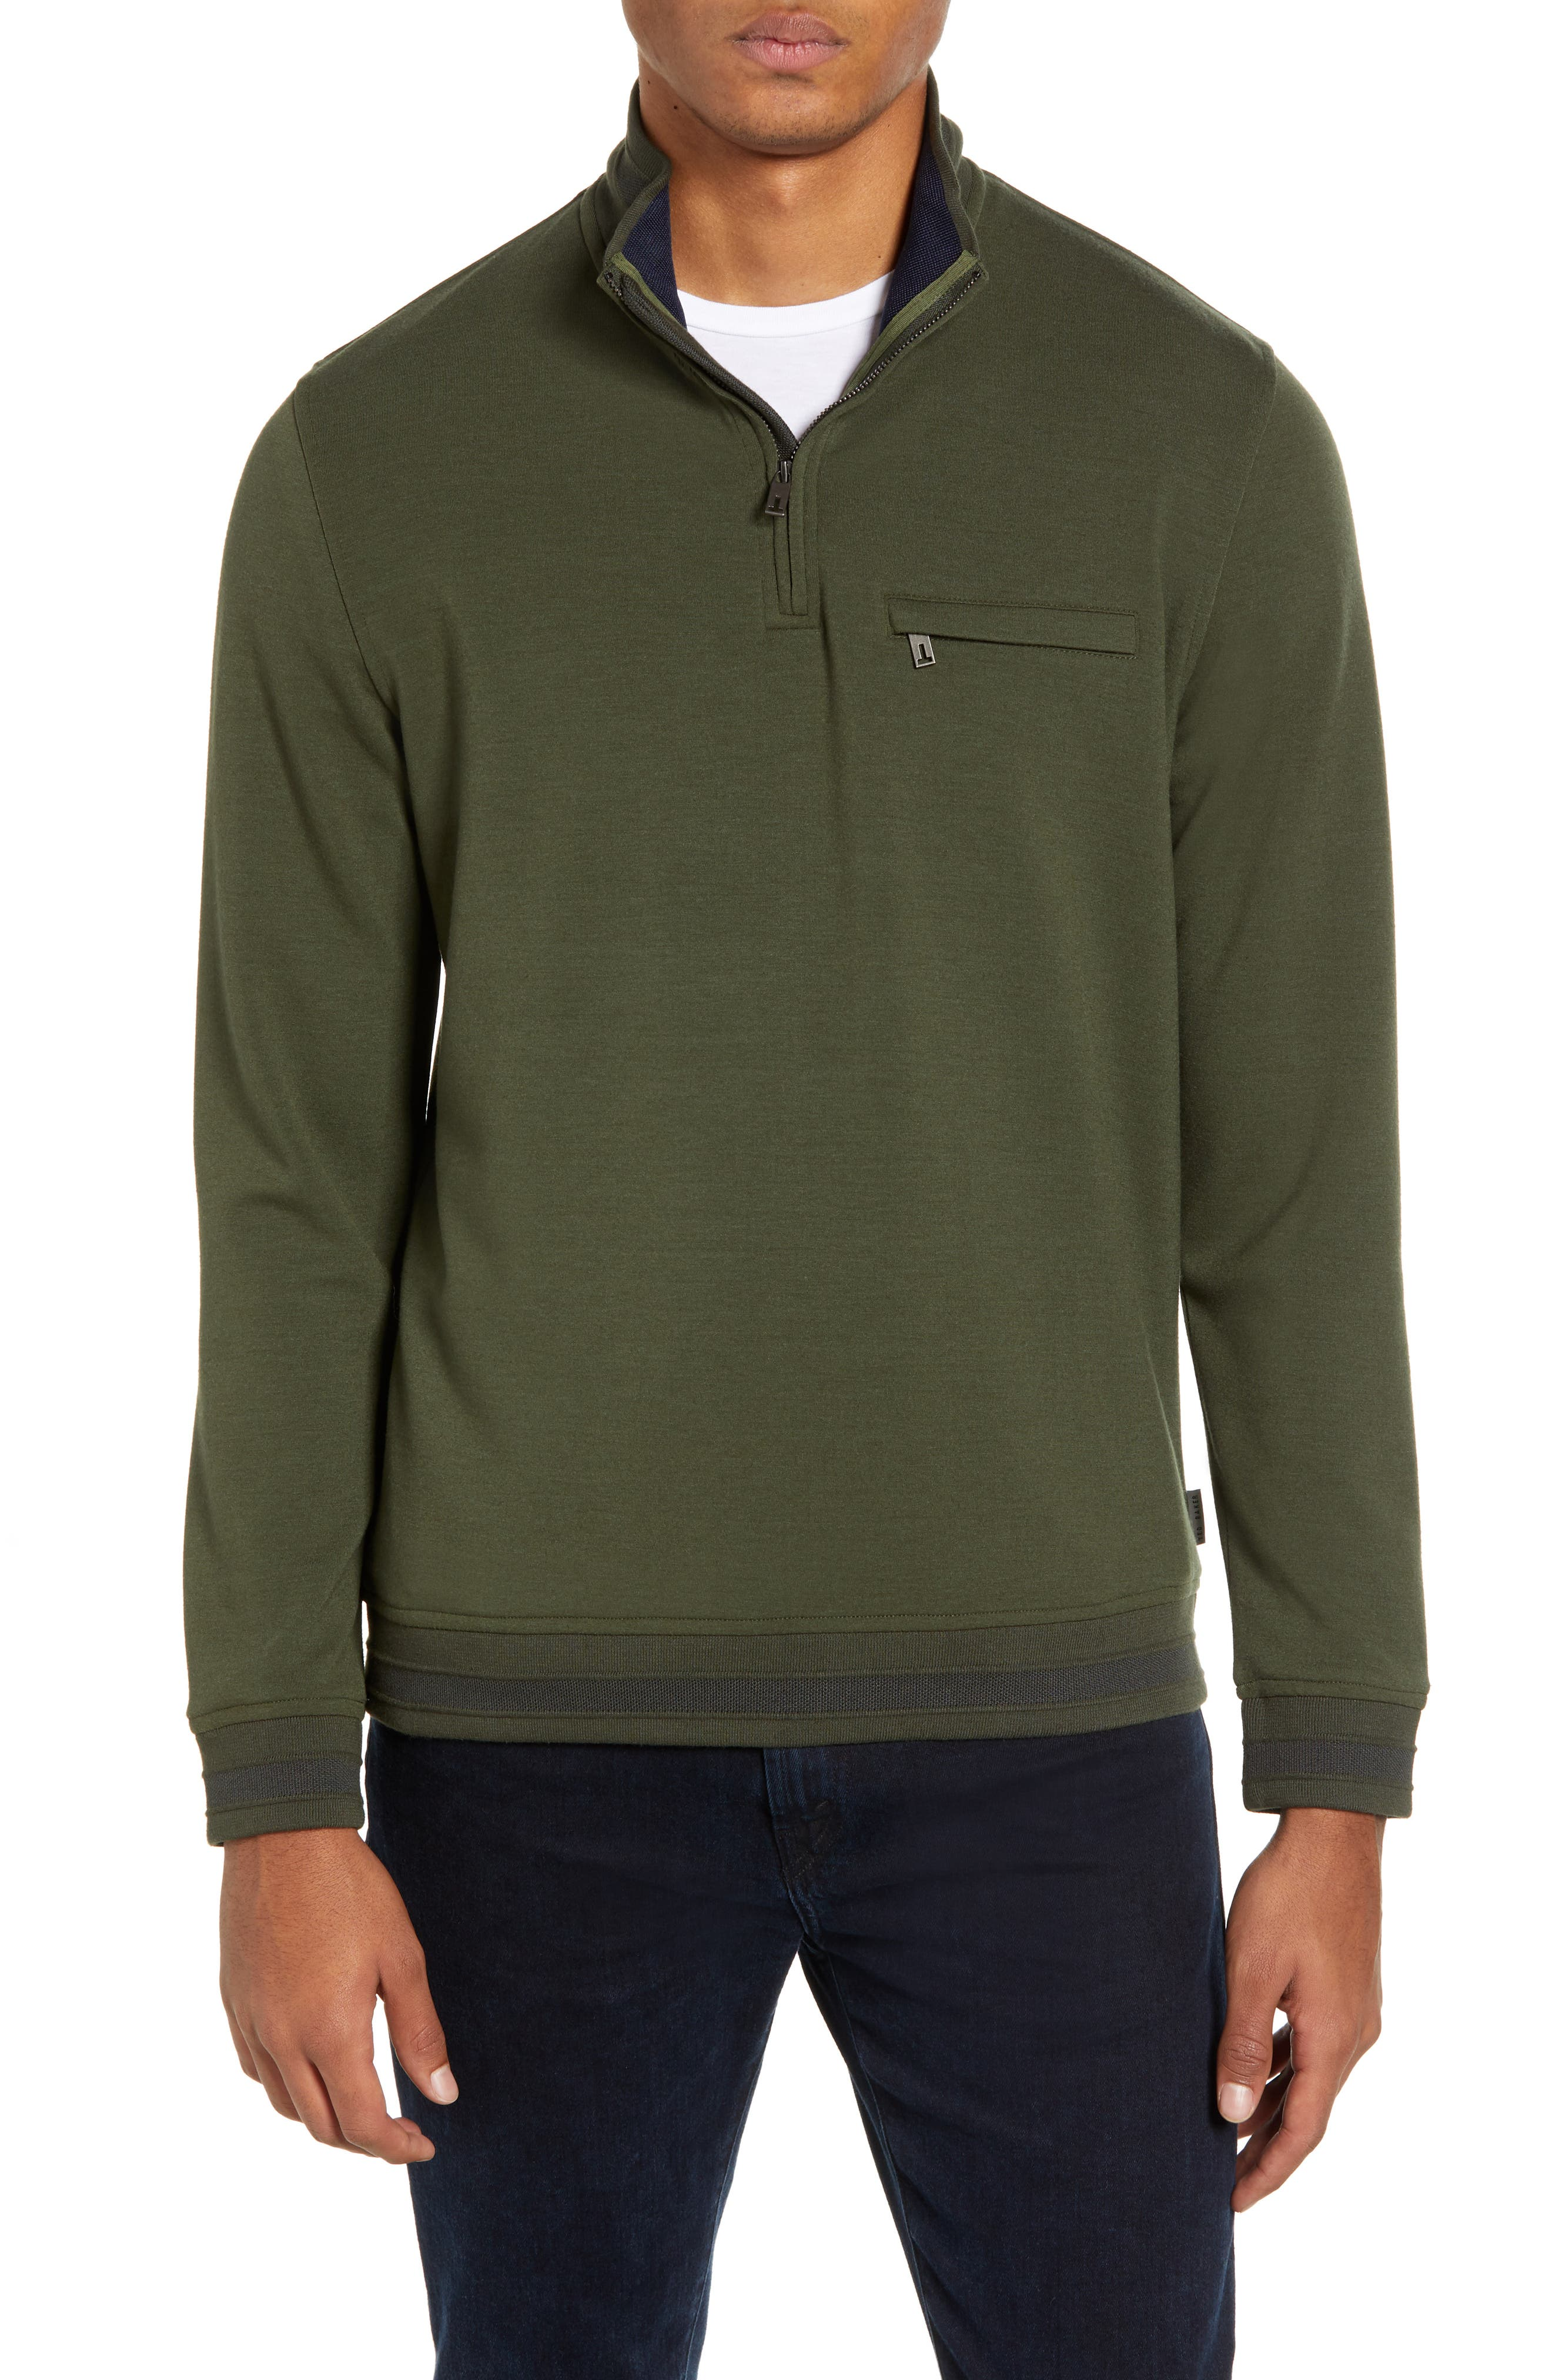 Leevit Quarter Zip Pullover,                         Main,                         color, KHAKI